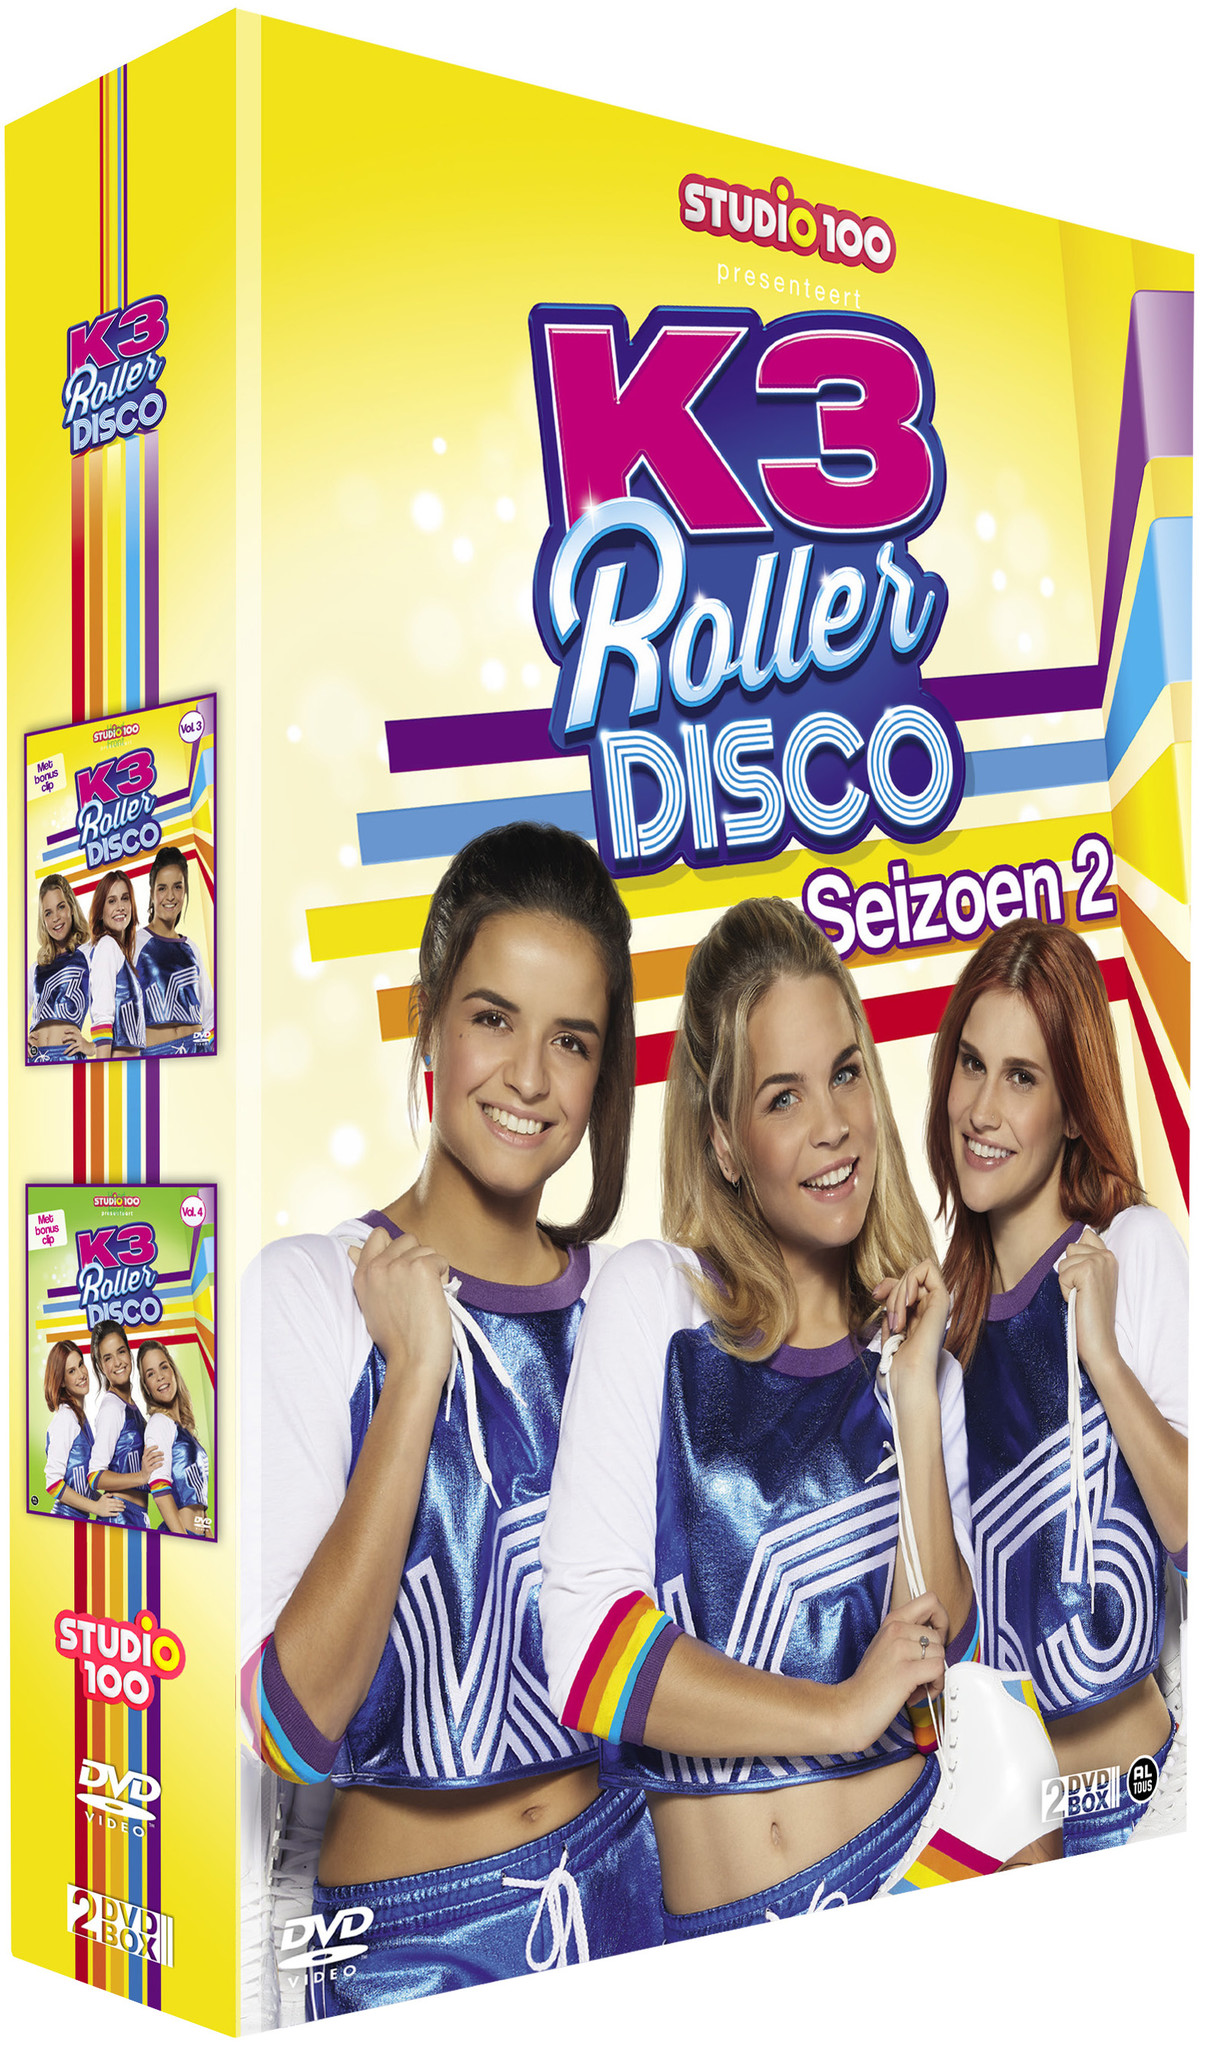 K3 DVD Box: Rollerdisco - Seizoen 2